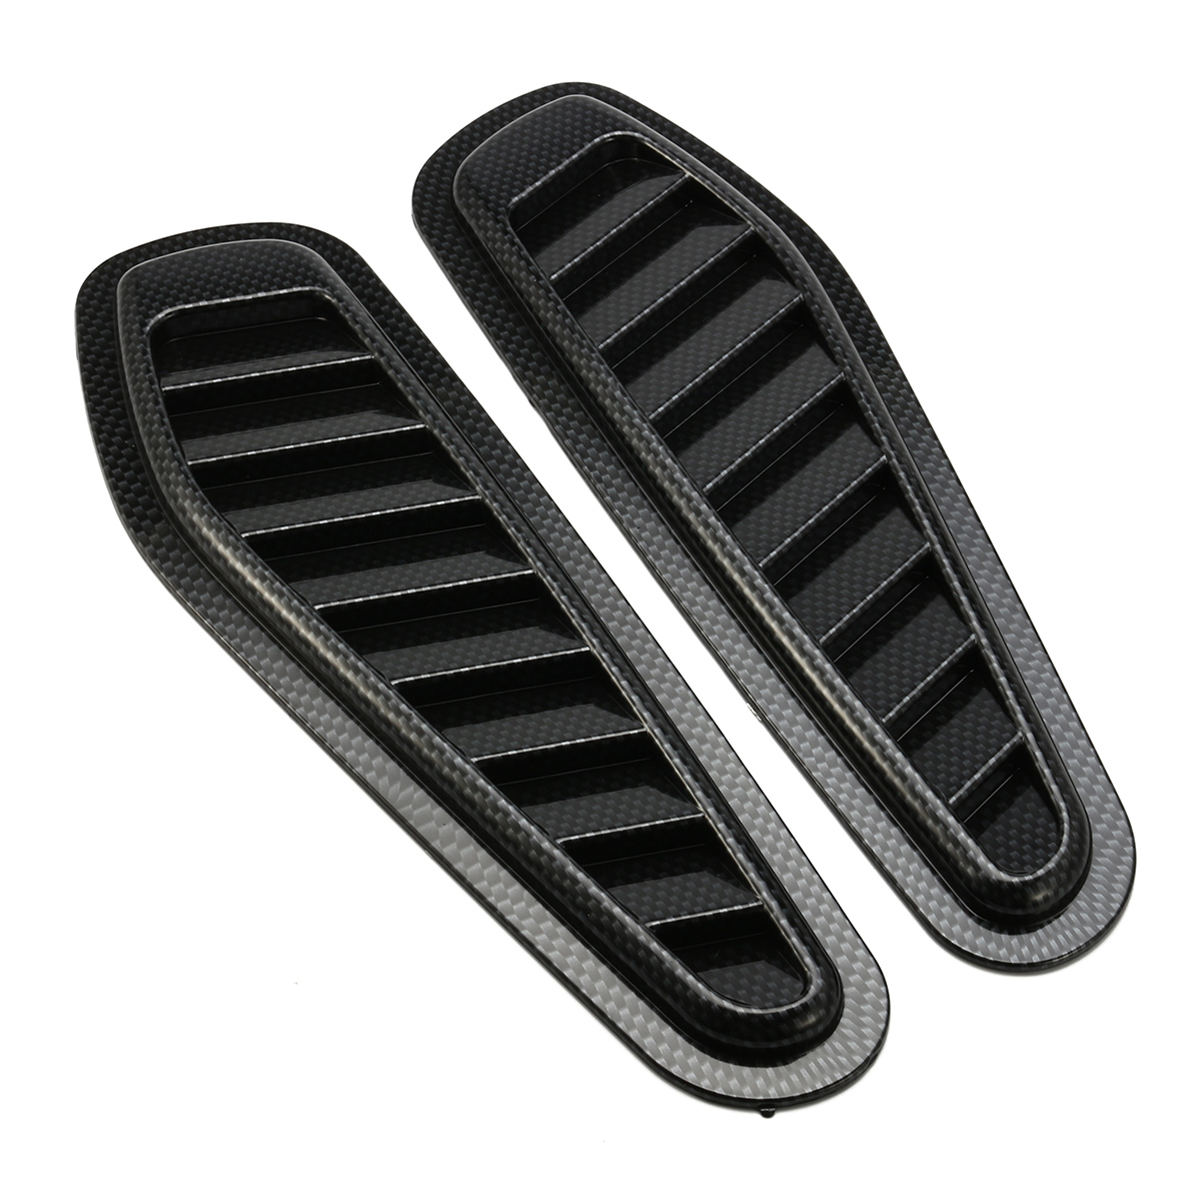 2Pcs ABS Race Car Hood Scoop Carbon Style Bonnet Crankcase Air Vent Valve Decorative Accessories